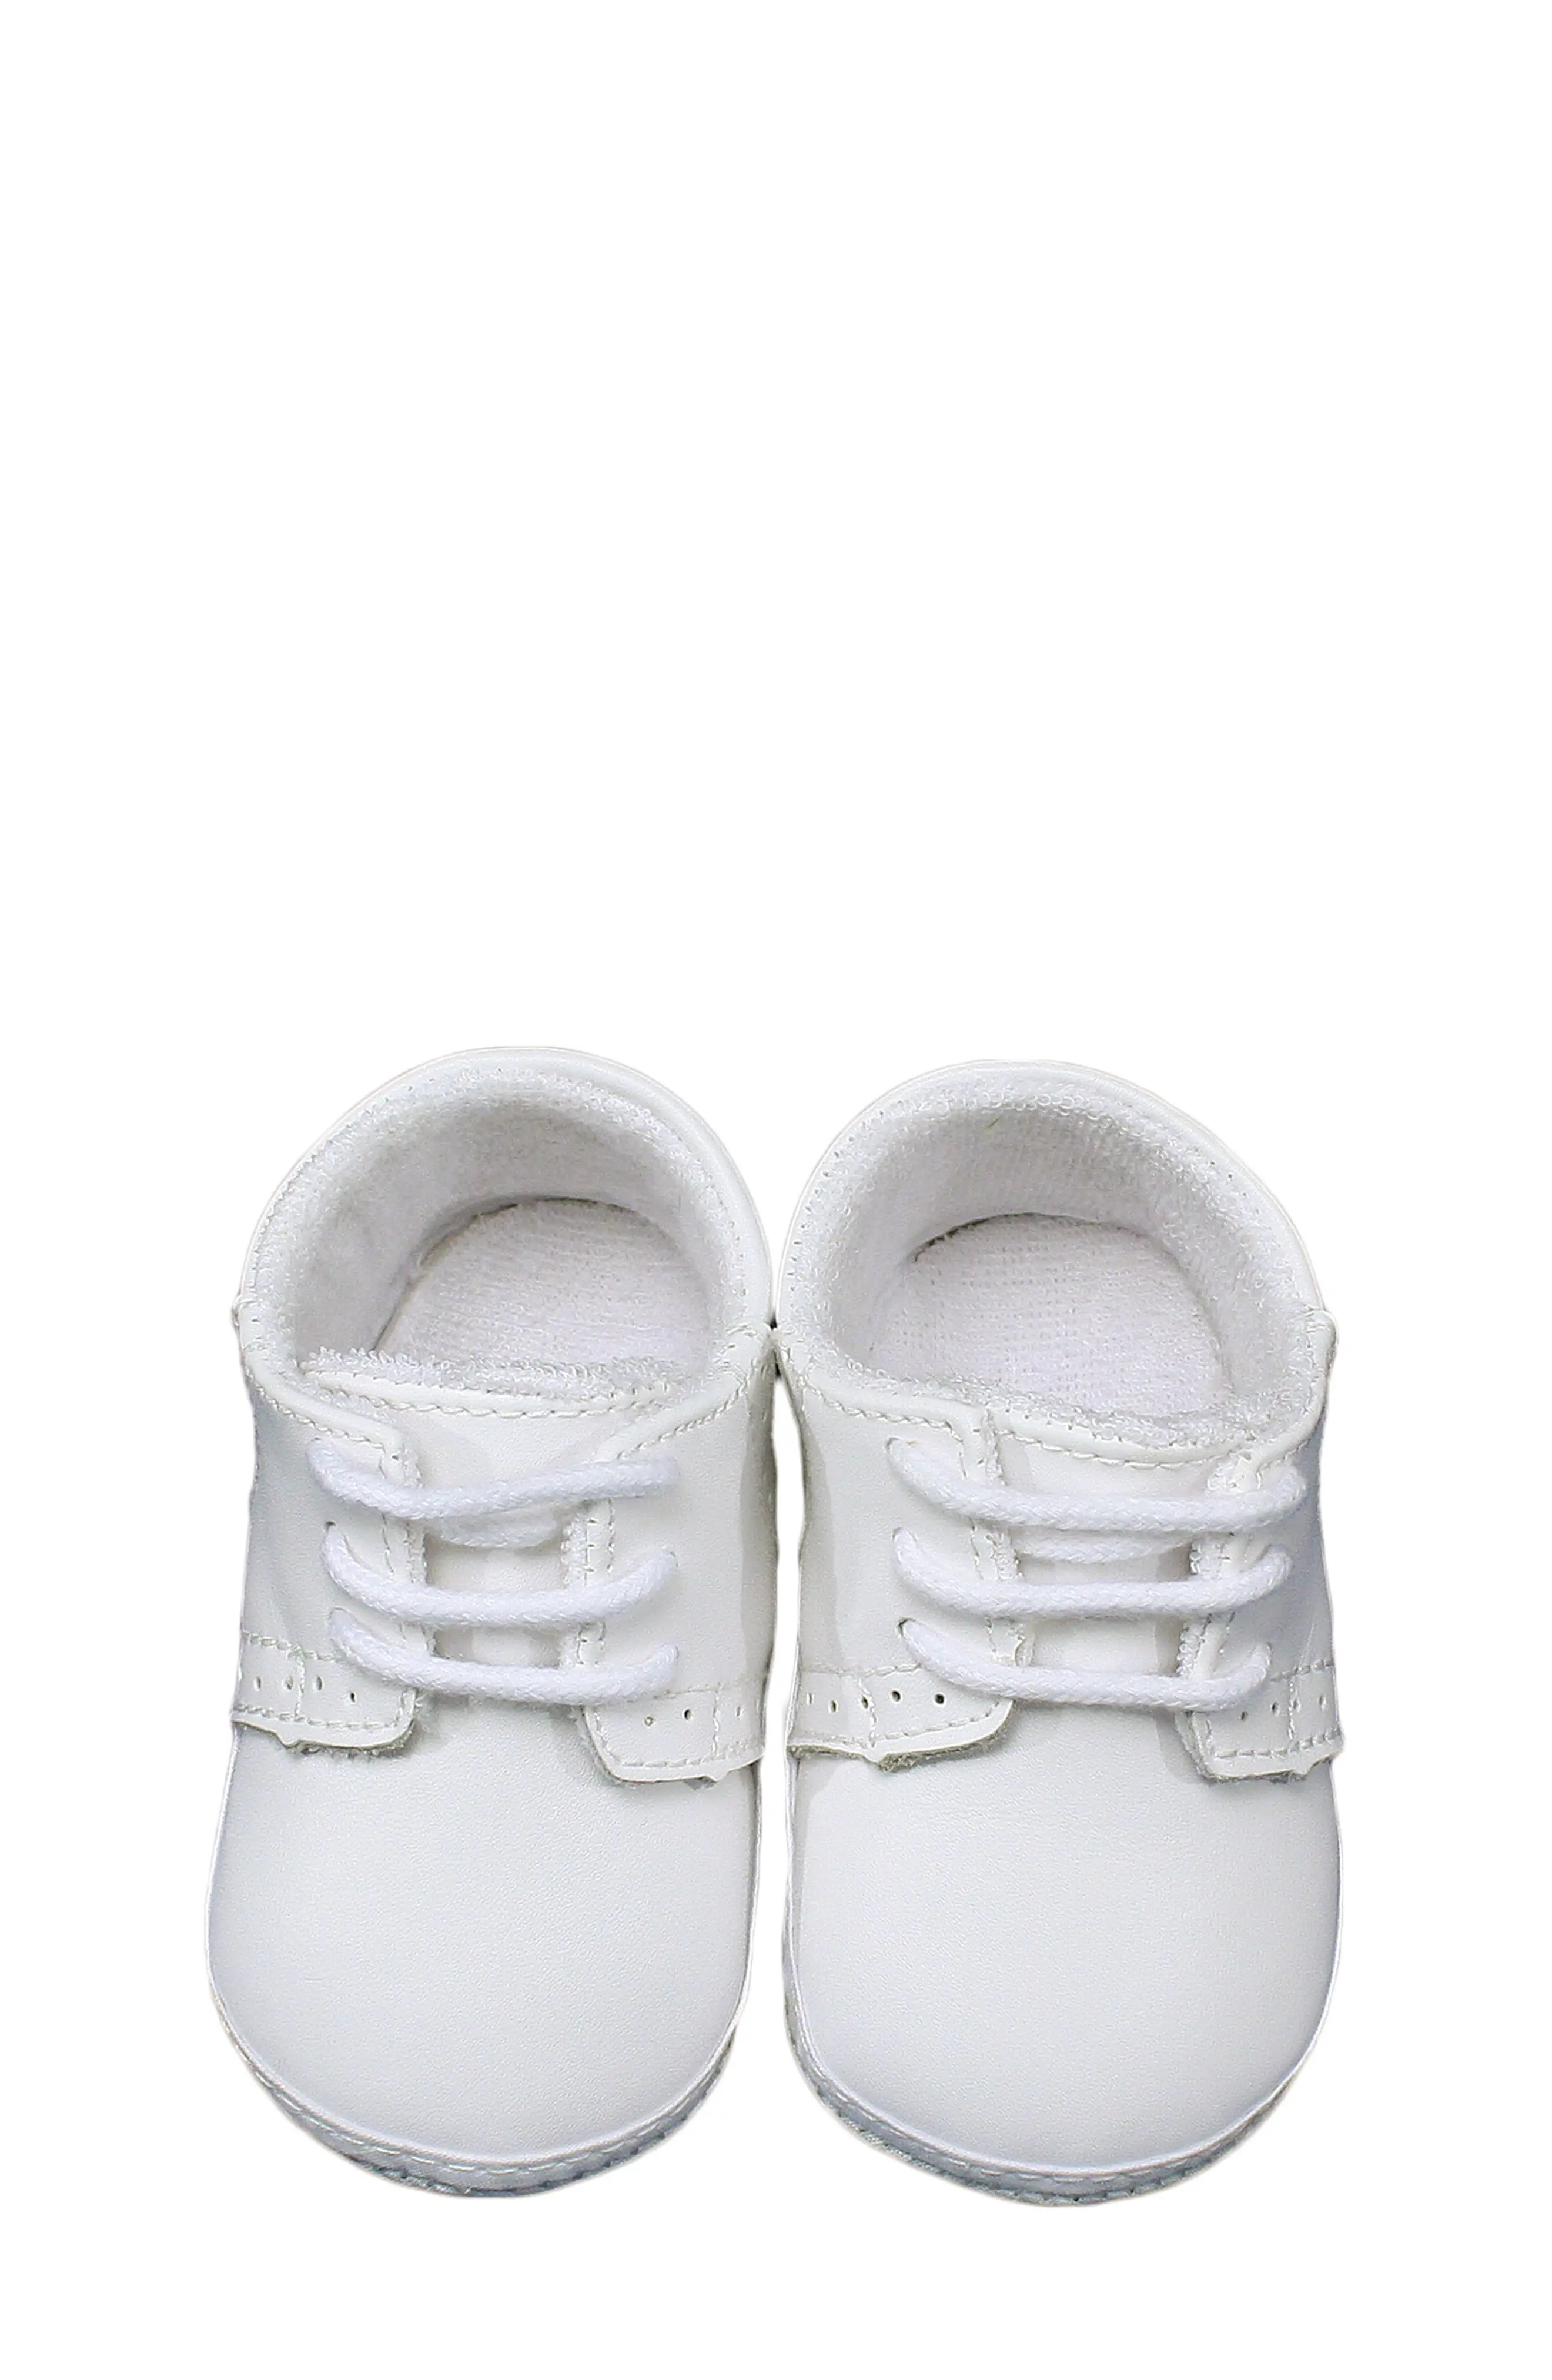 Baby White Converse Pram Shoes Shoes Boy Baby